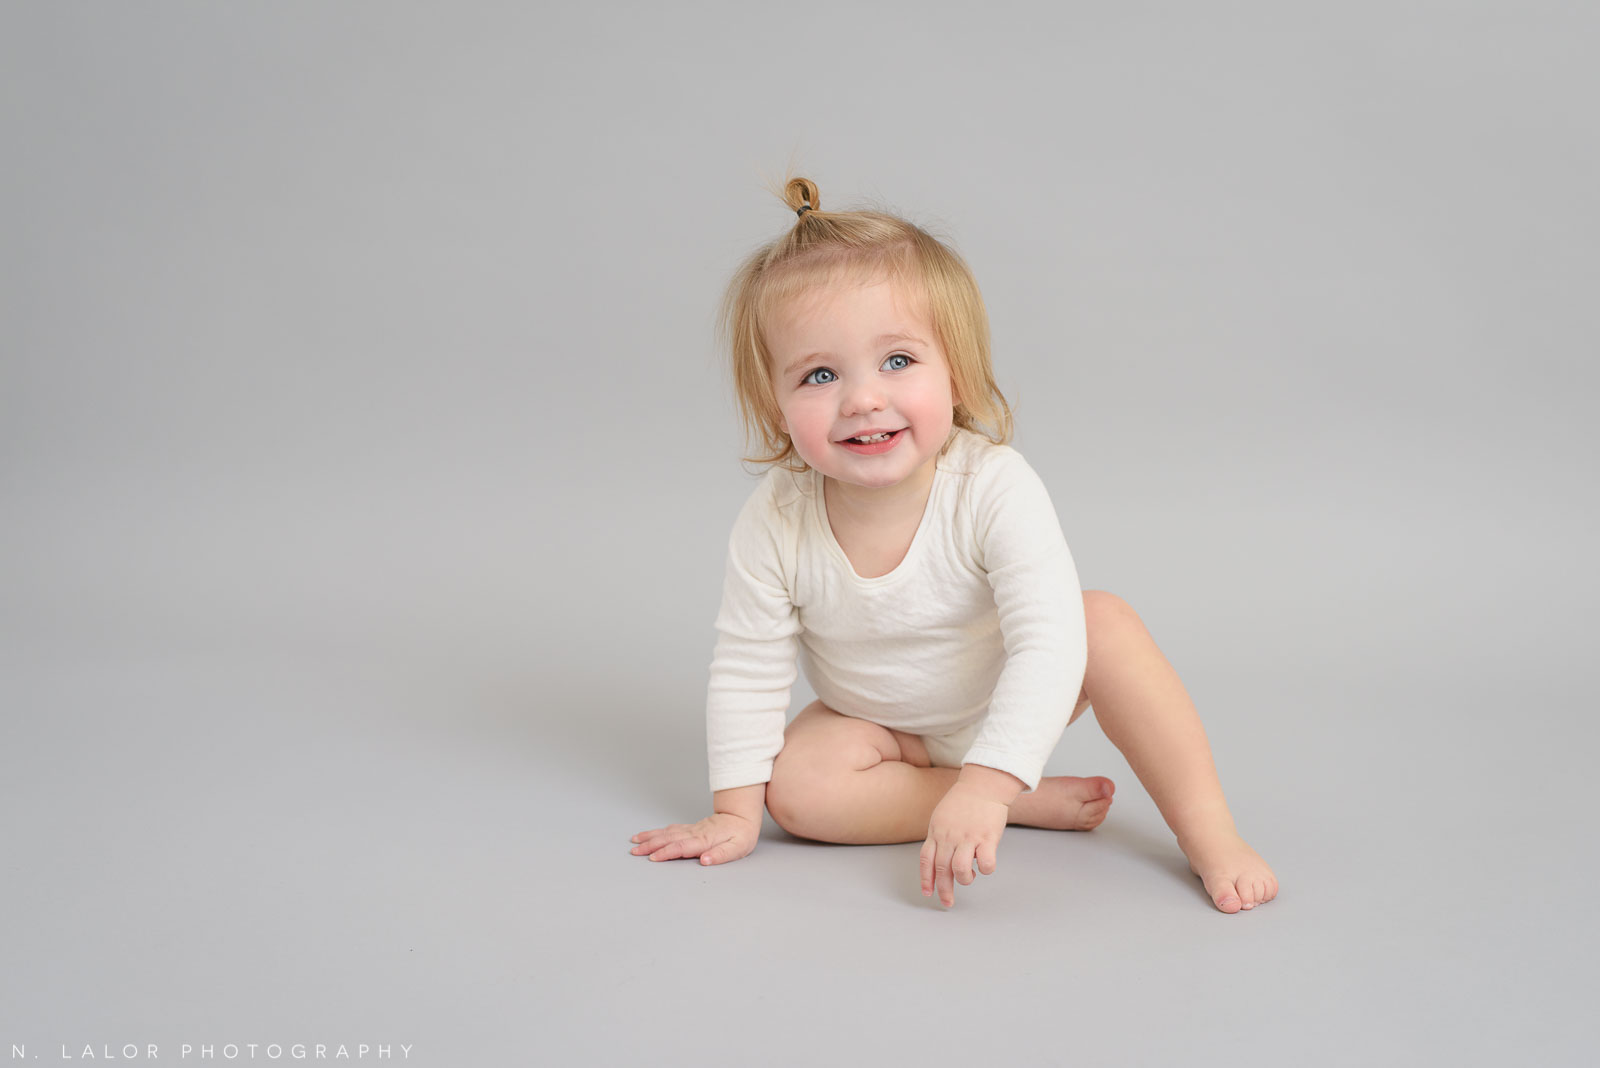 Adorable 1 year old in the Studio. Studio portrait by N. Lalor Photography, Greenwich CT family photographer.